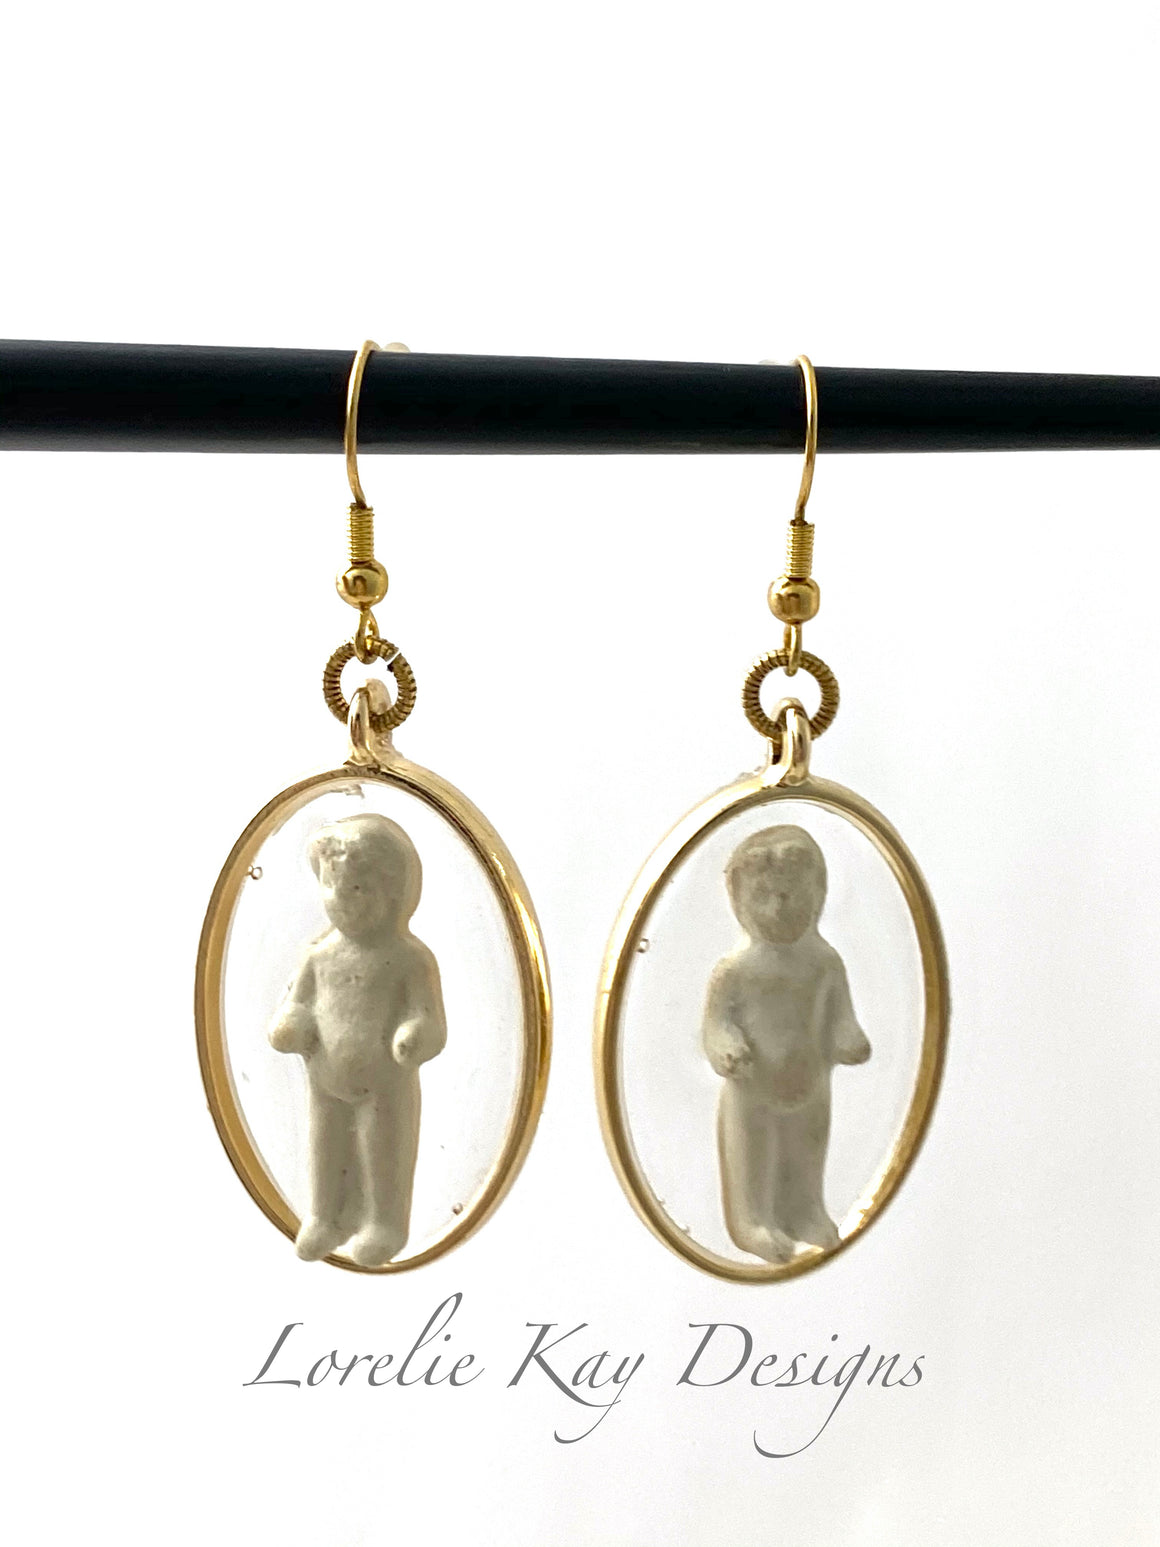 Frozen Charlotte Doll Earrings Oval Cast Resin Gold Plate